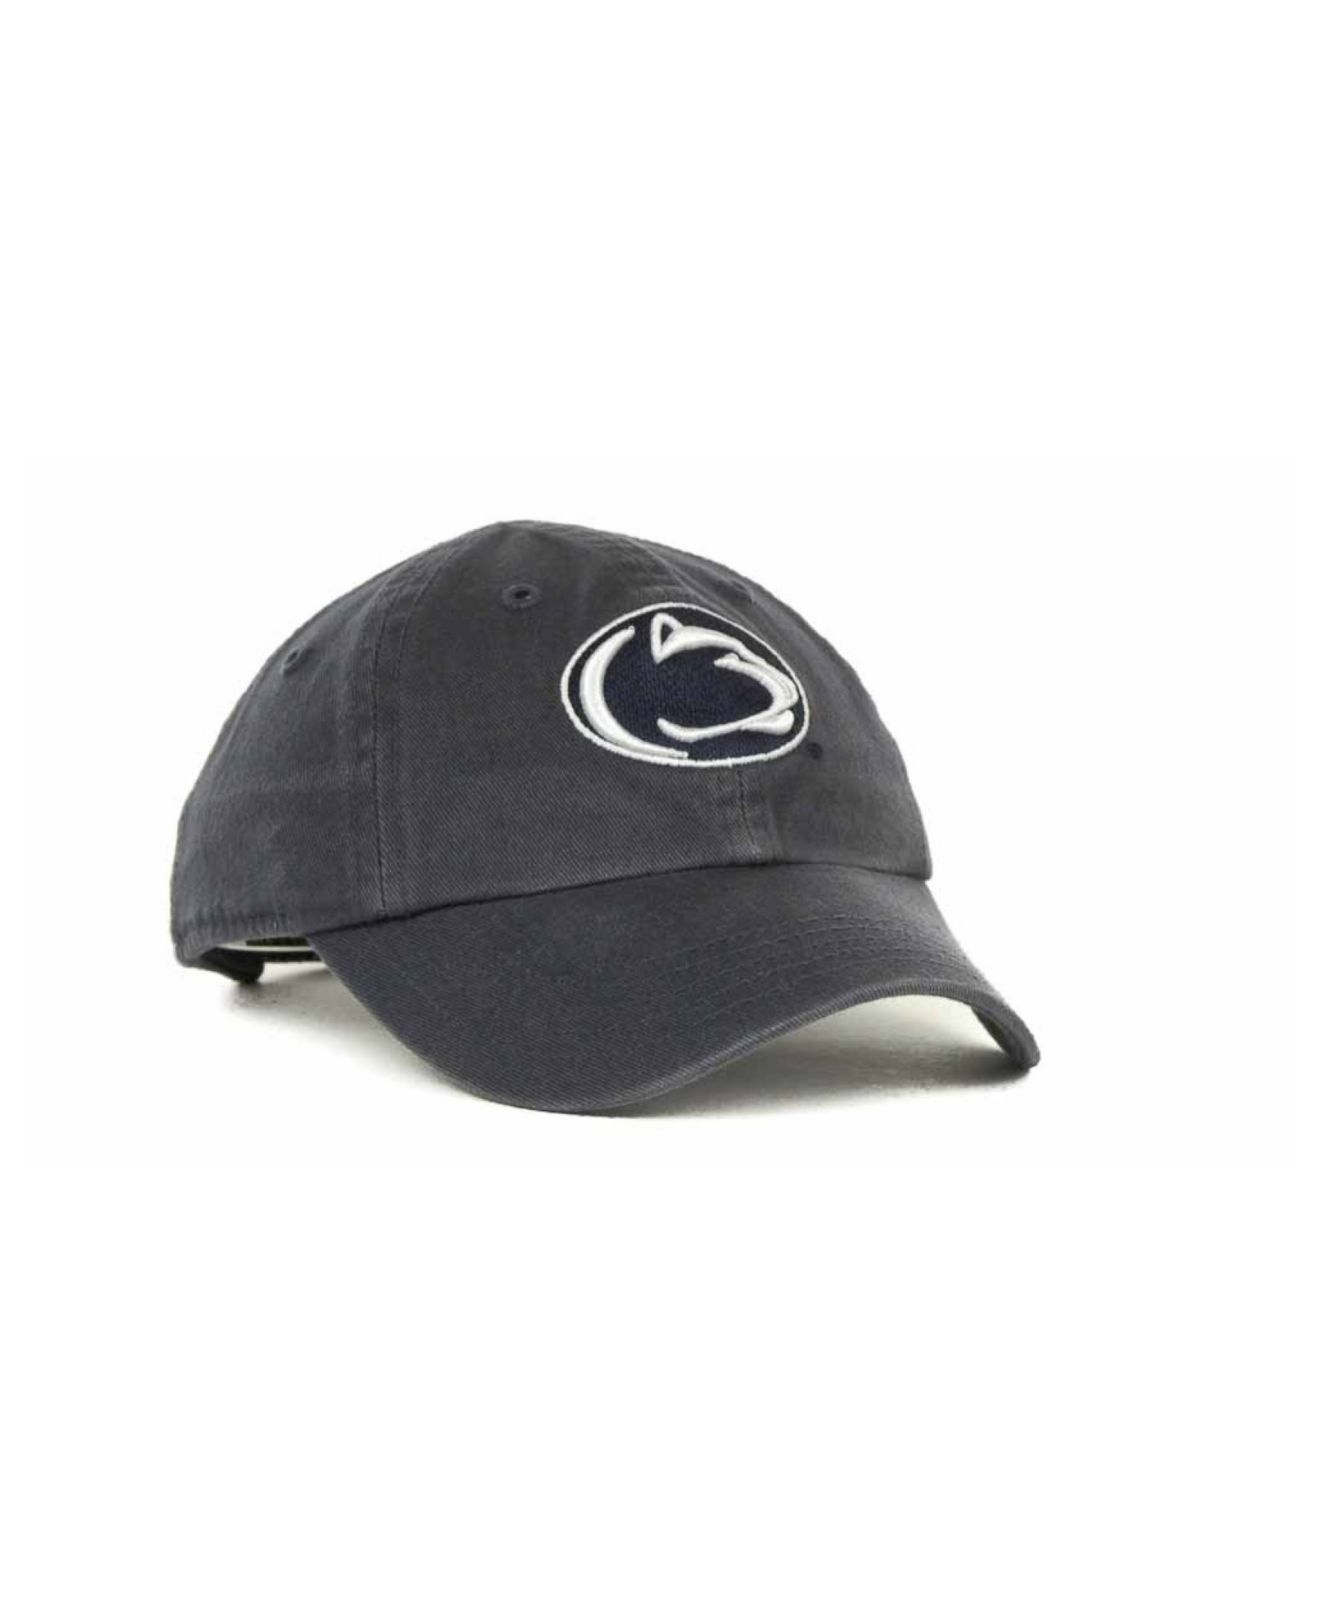 Lyst - 47 Brand Babies  Penn State Nittany Lions Clean Up Cap in ... 5b1b3f609cb7